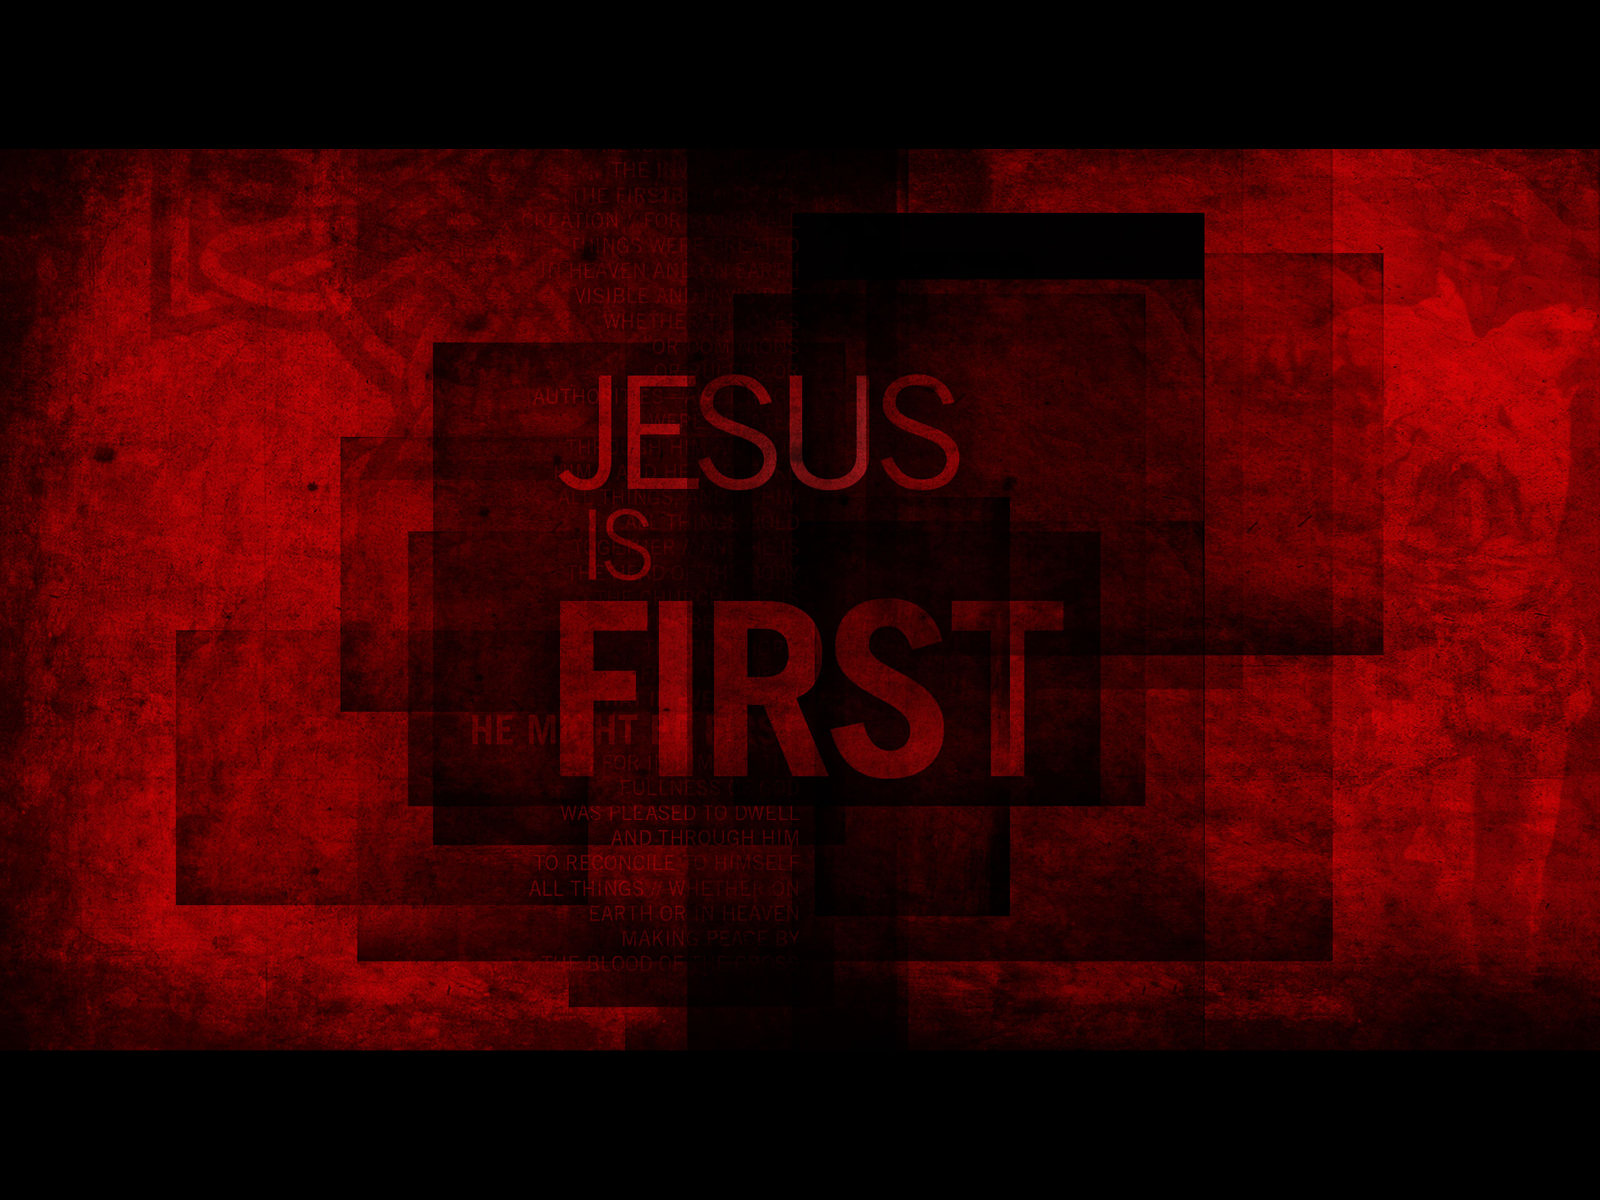 2560x1440 Wallpapers Hd Bible Quotes Jesus Is First Wallpaper 1 Wawasee Bible